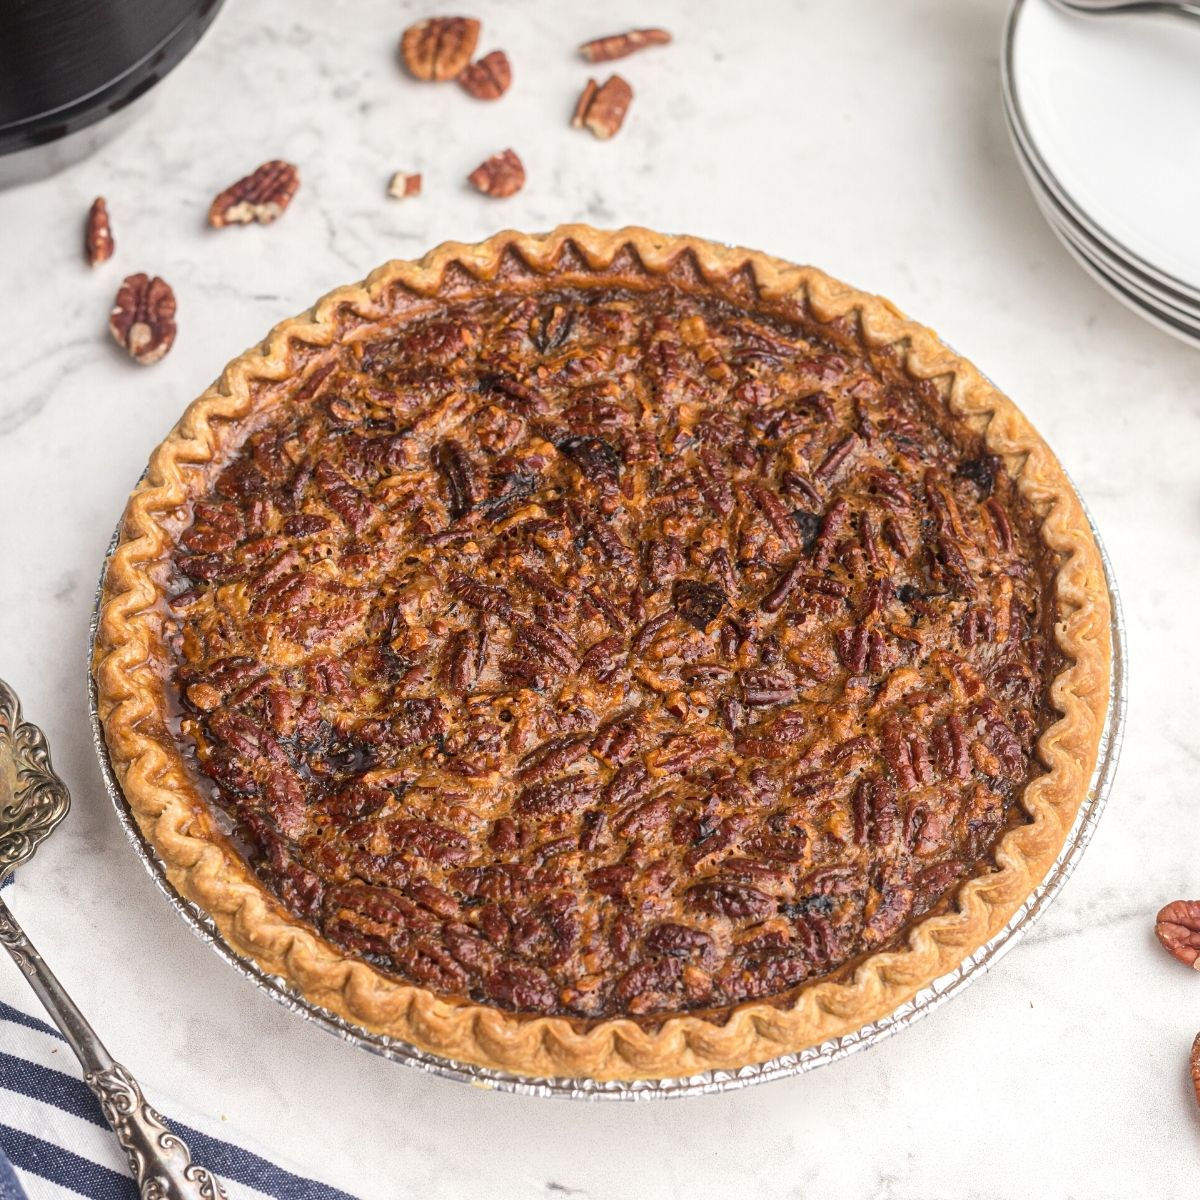 Golden pecan pie on a white marble table with scattered pecans around the pie plate.